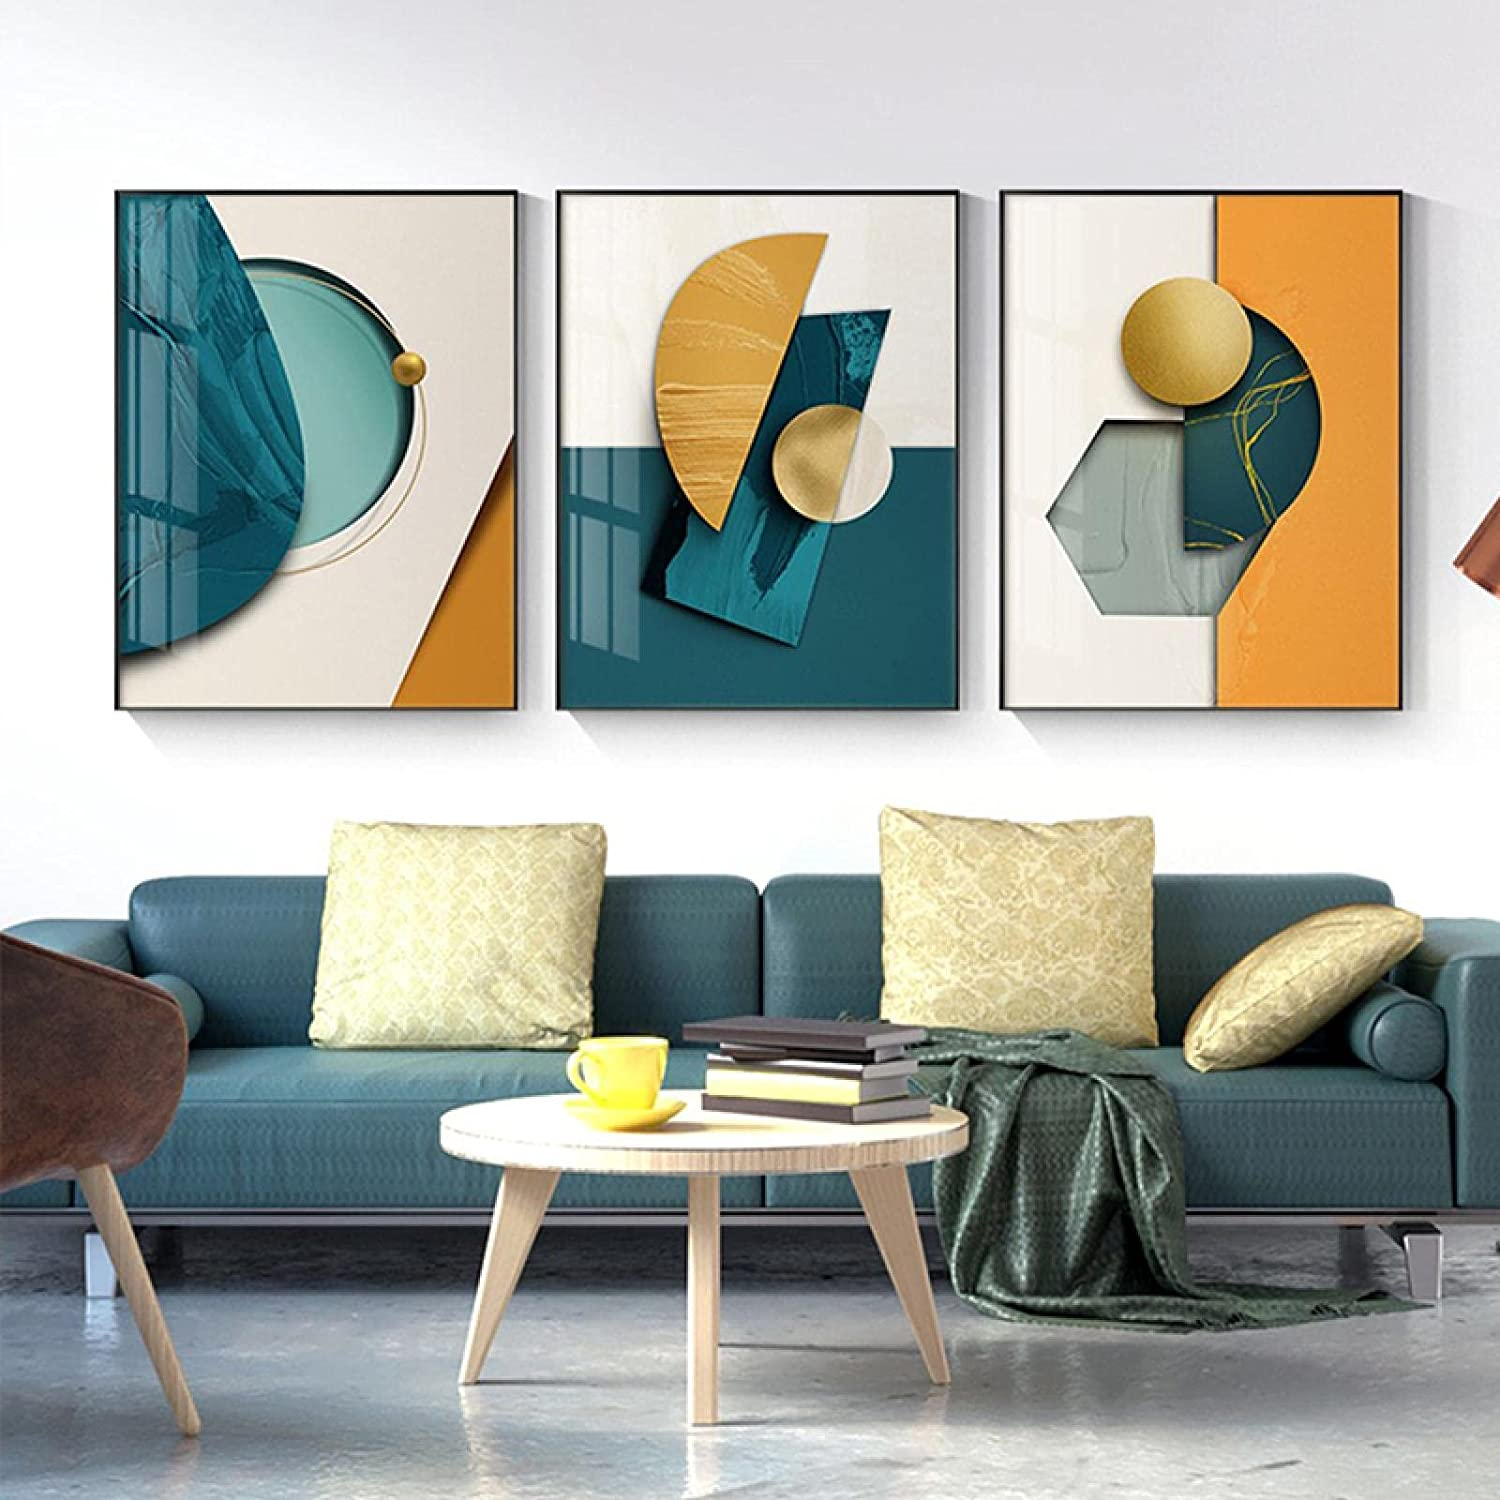 KELEQI Modern Department store Posters Prints Wall and Ranking TOP2 Art Yellow Geometric Green